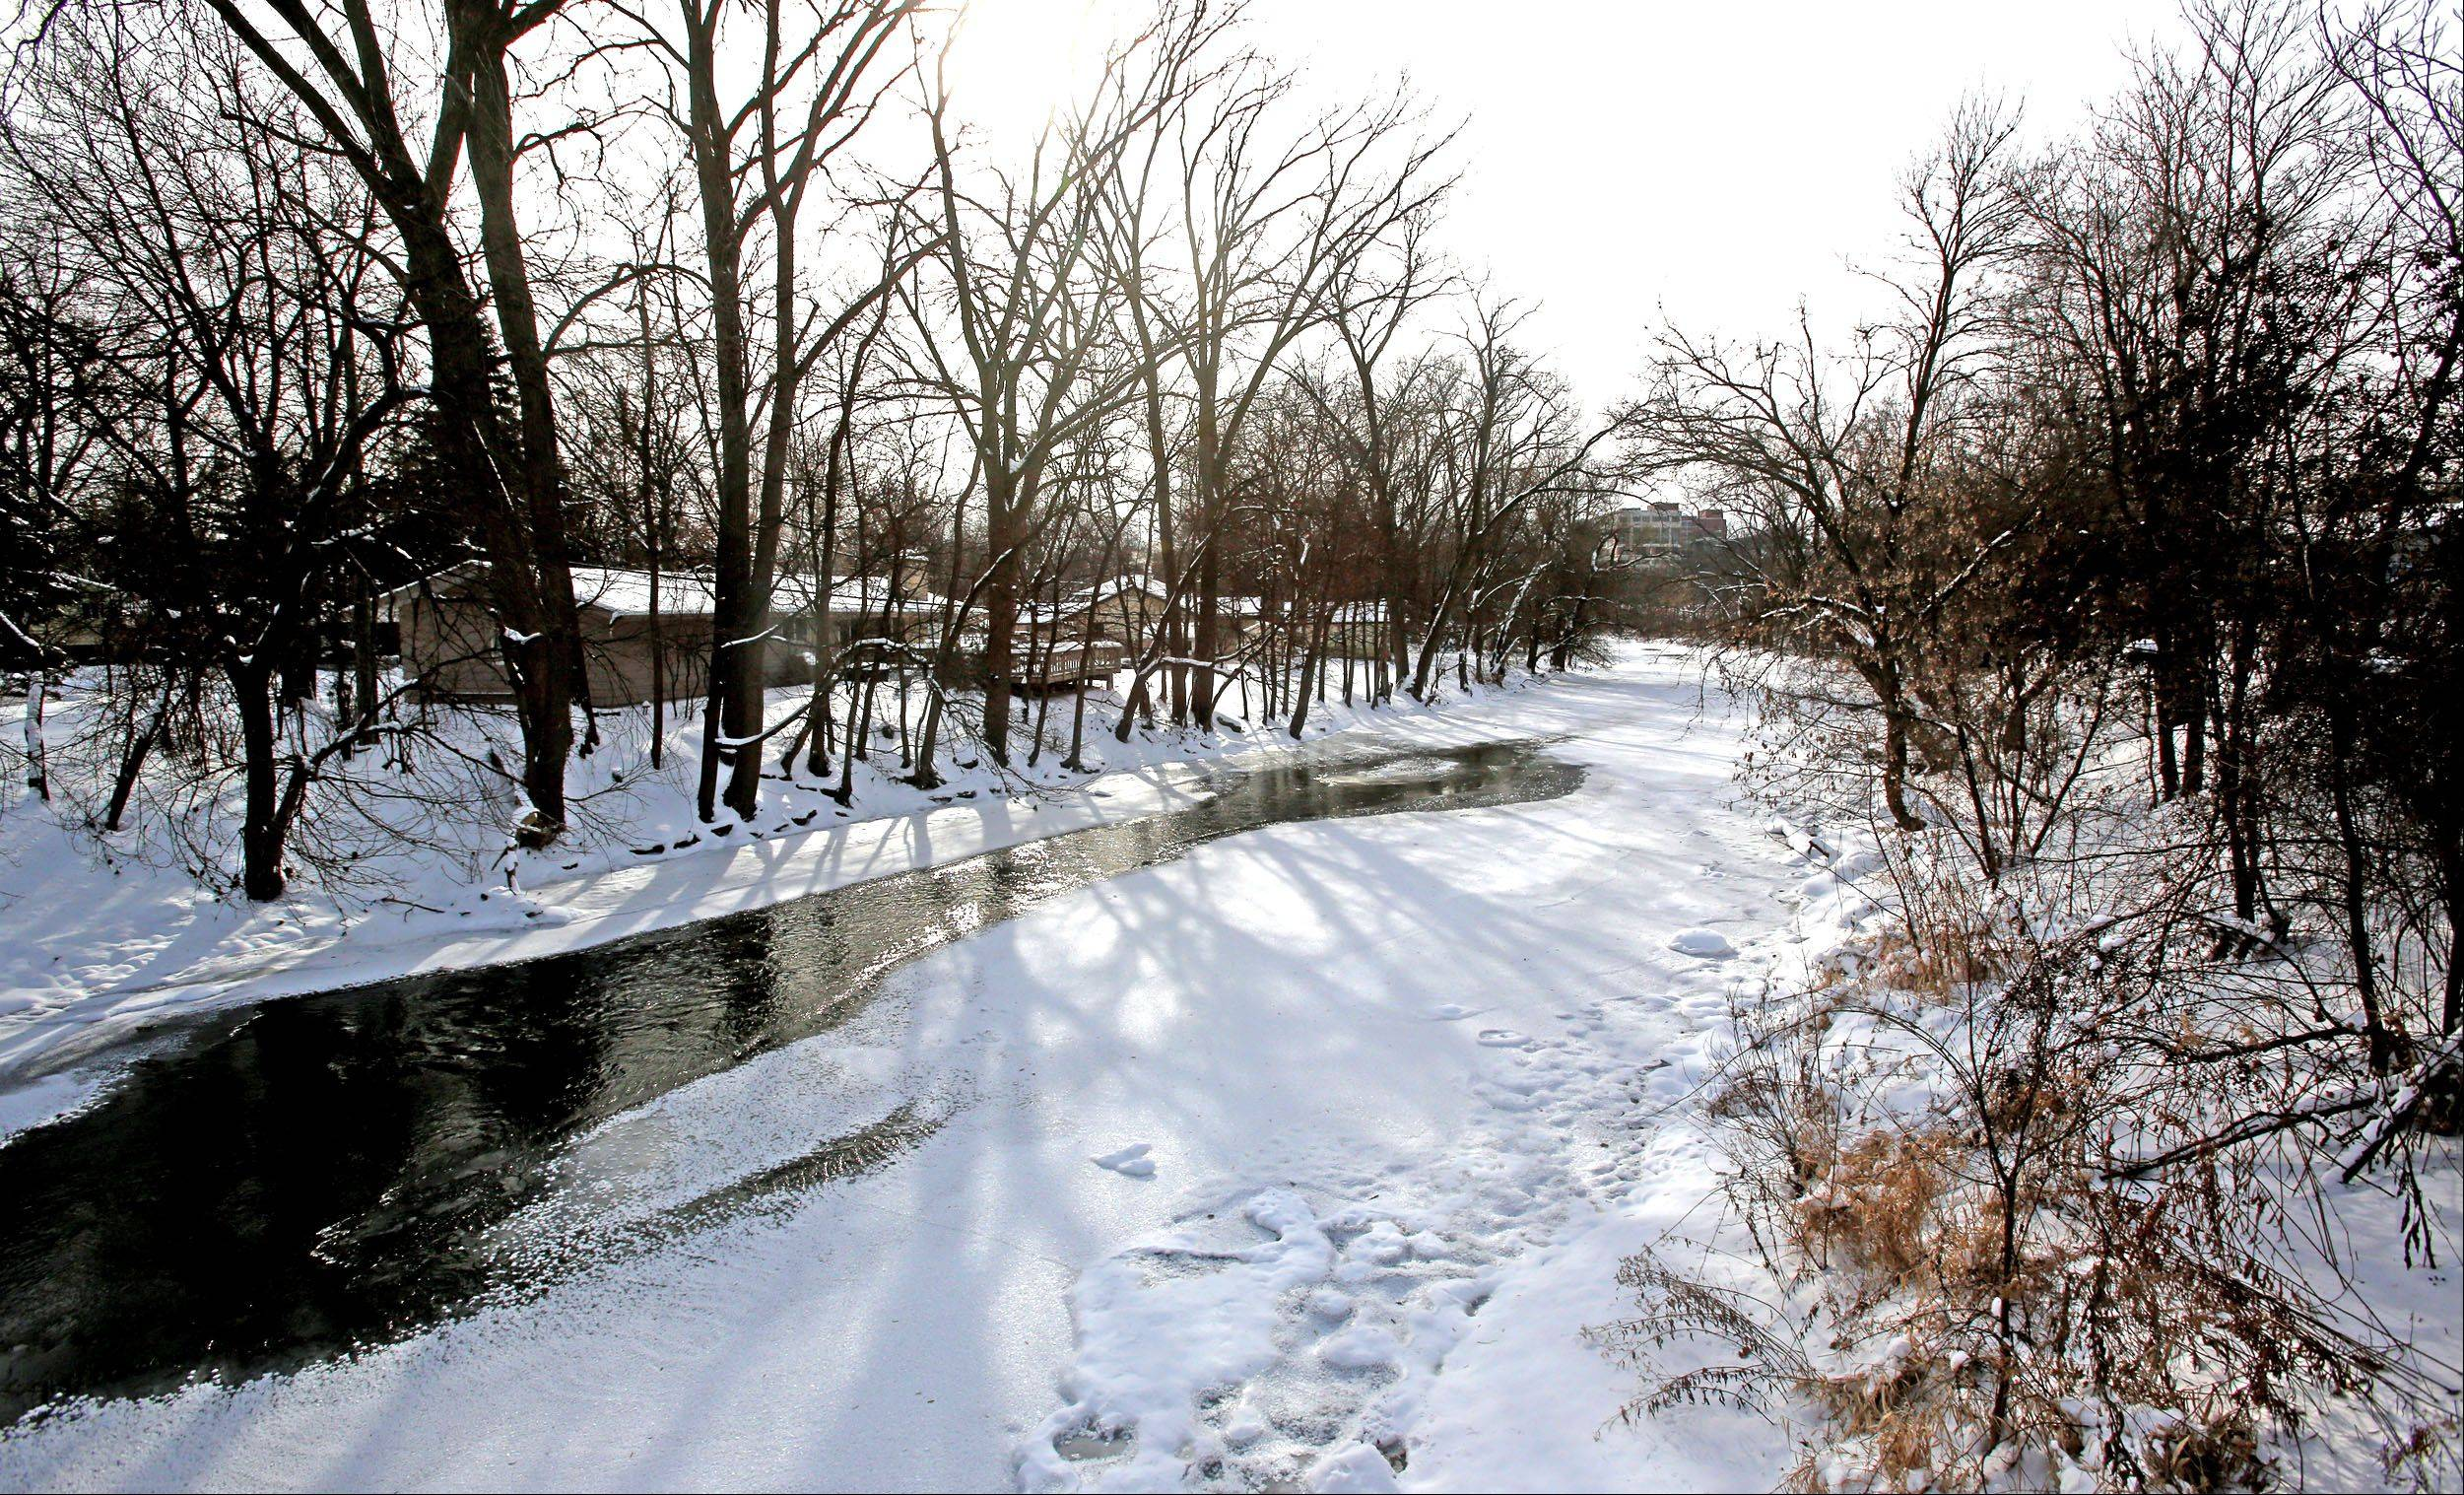 The Riverwalk in Naperville ends here at Hillside Road, but the city council soon will consider a boundary extension that could lengthen the 1.75-mile path south to Martin Avenue.